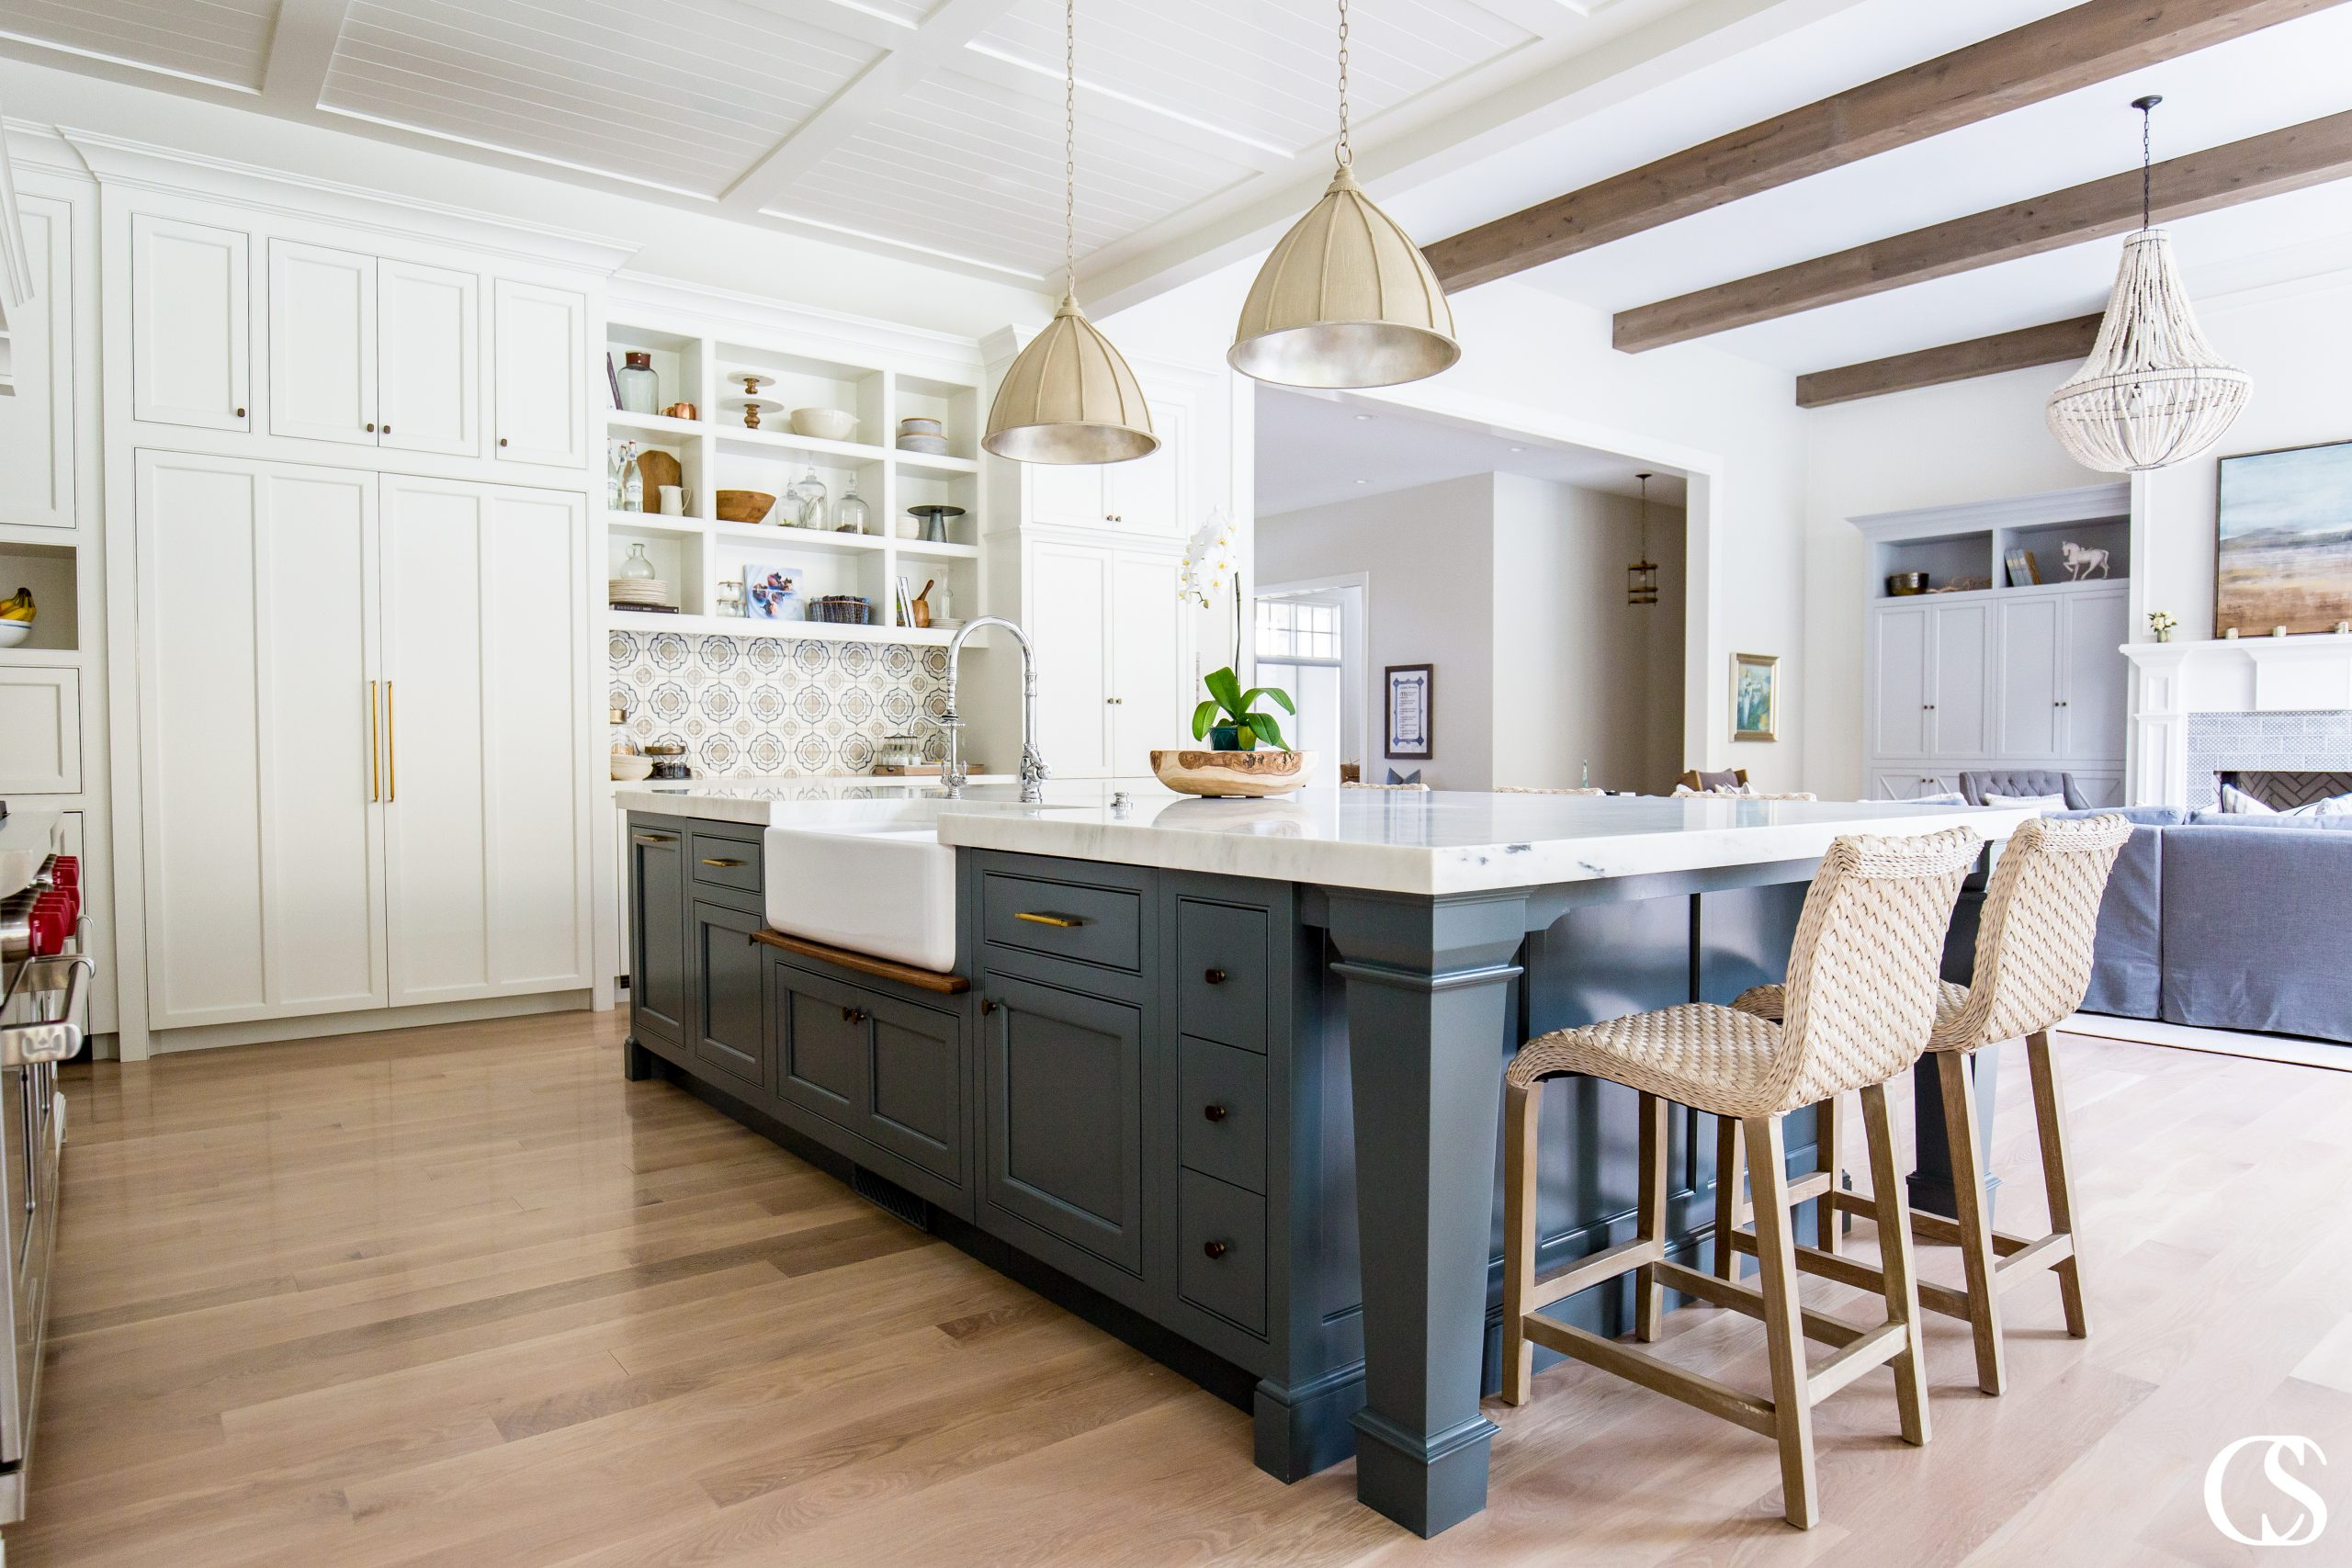 This big kitchen island design in one of our favorite blue custom kitchens becomes a focal point of the space but also serves as a separator between kitchen and living rooms, making each space its own while coordinating beautifully.